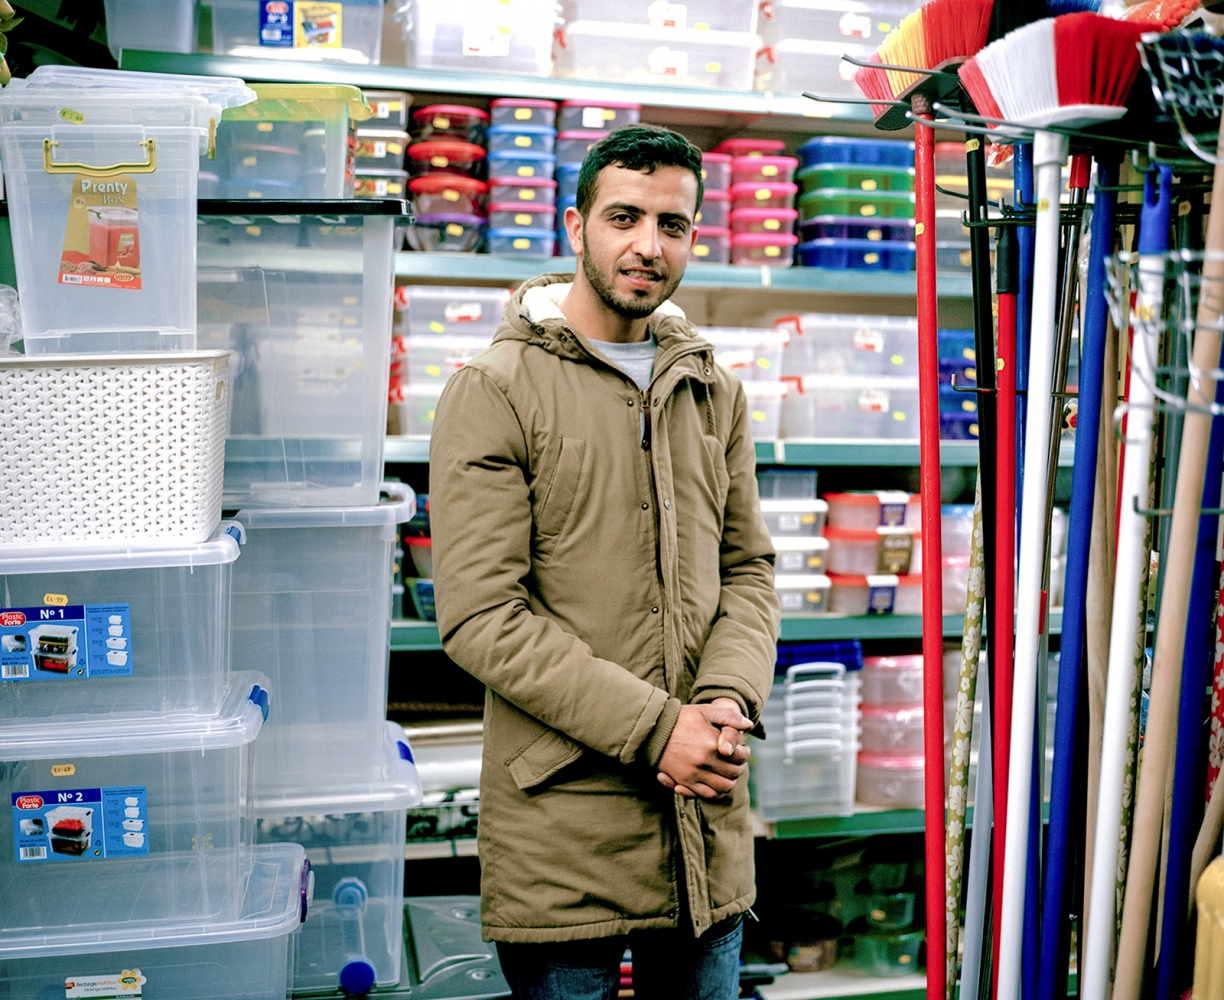 This is Tariq Zakil, he works in one of the shops which sells everything and anything. We don't have a long conversation, he seems quite shy.